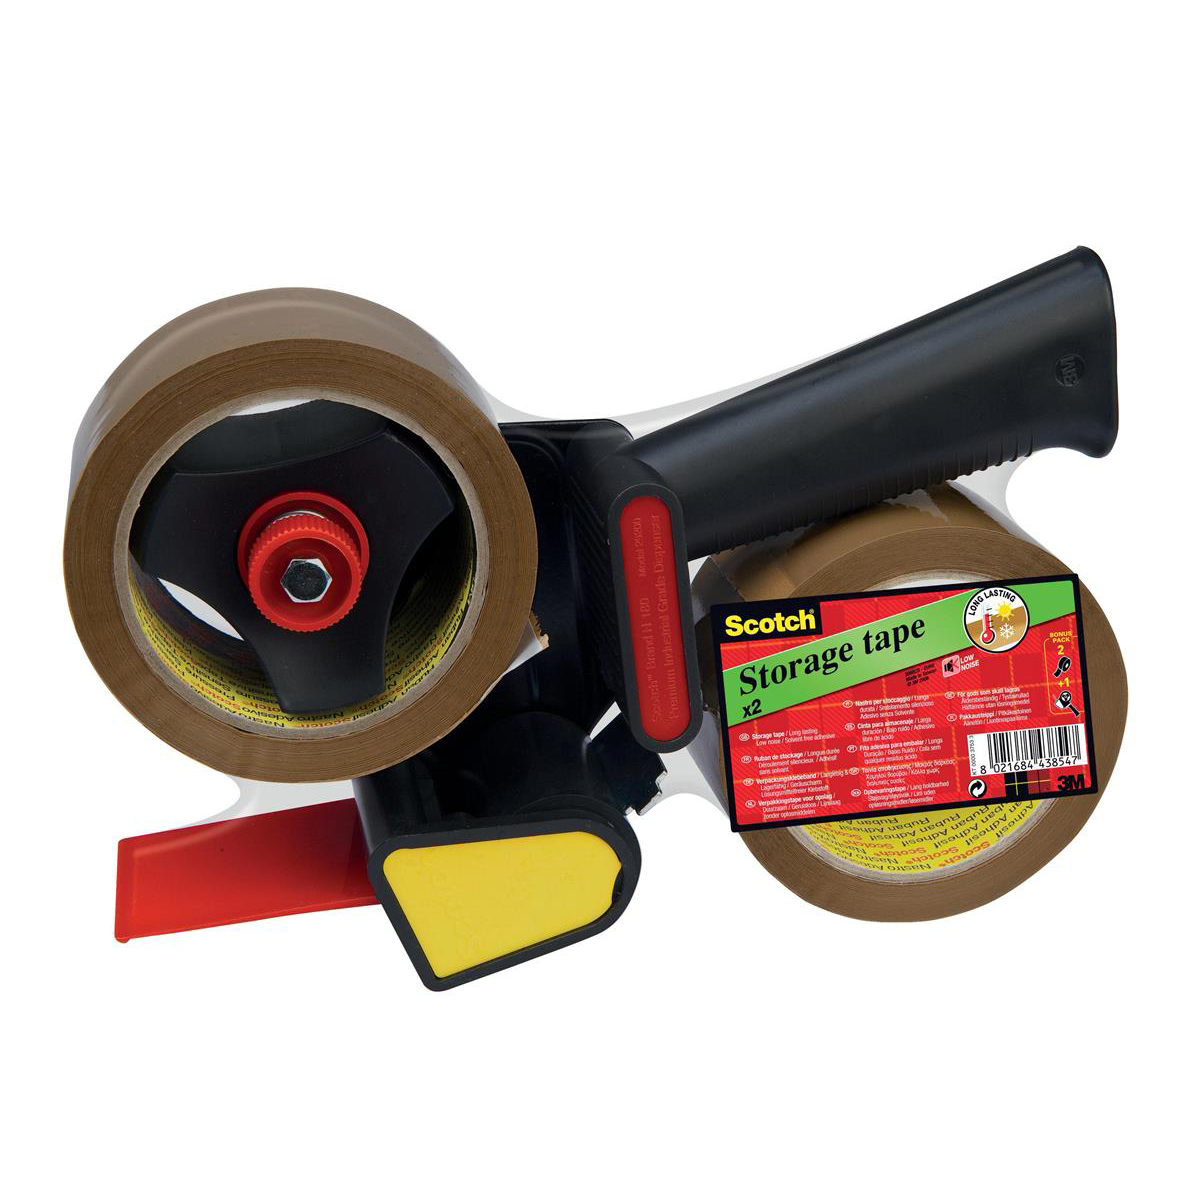 Tape Dispensers Scotch Tape Dispenser Kit Contains 1xDispenser & 2xRolls 50mmx60m Buff Packaging Tape Ref LN5066R21